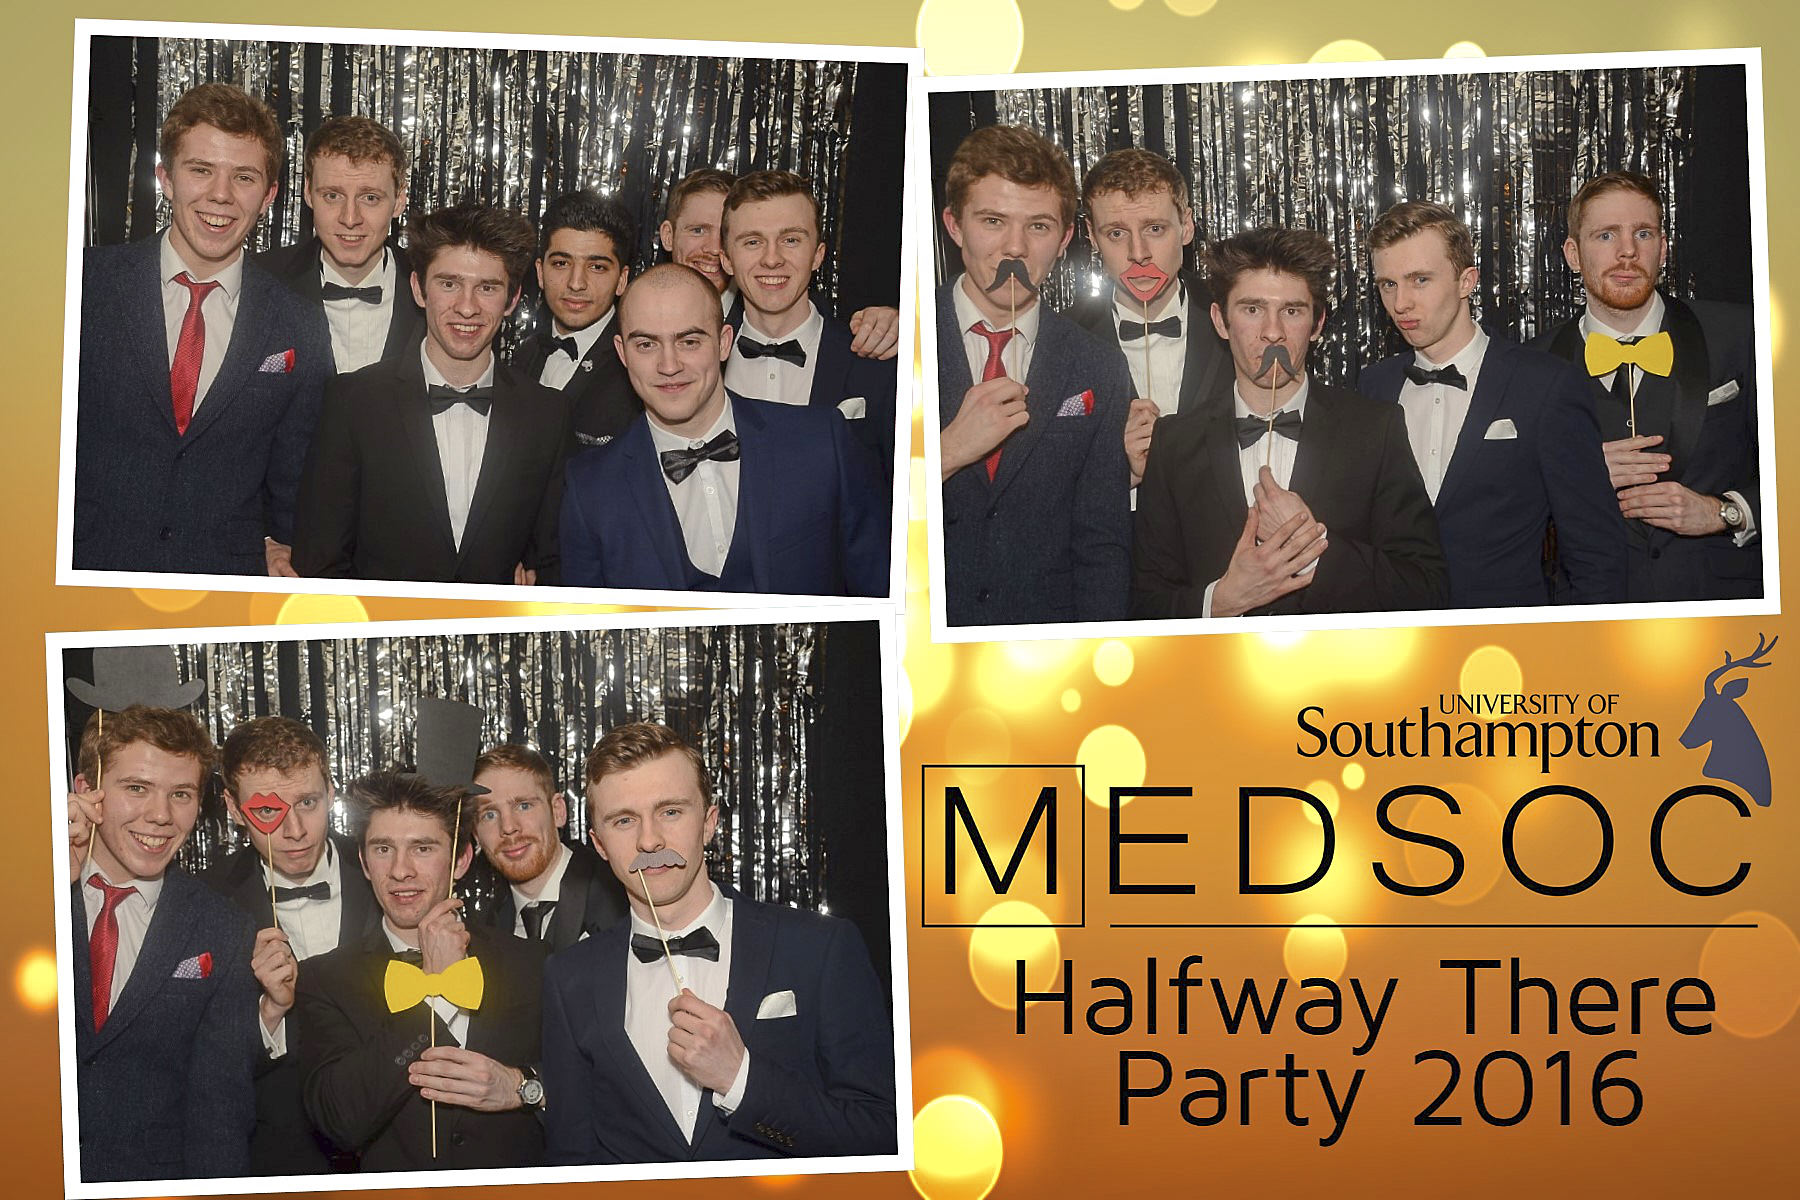 MedSoc Halfway There Party 2016 DS203914.jpg